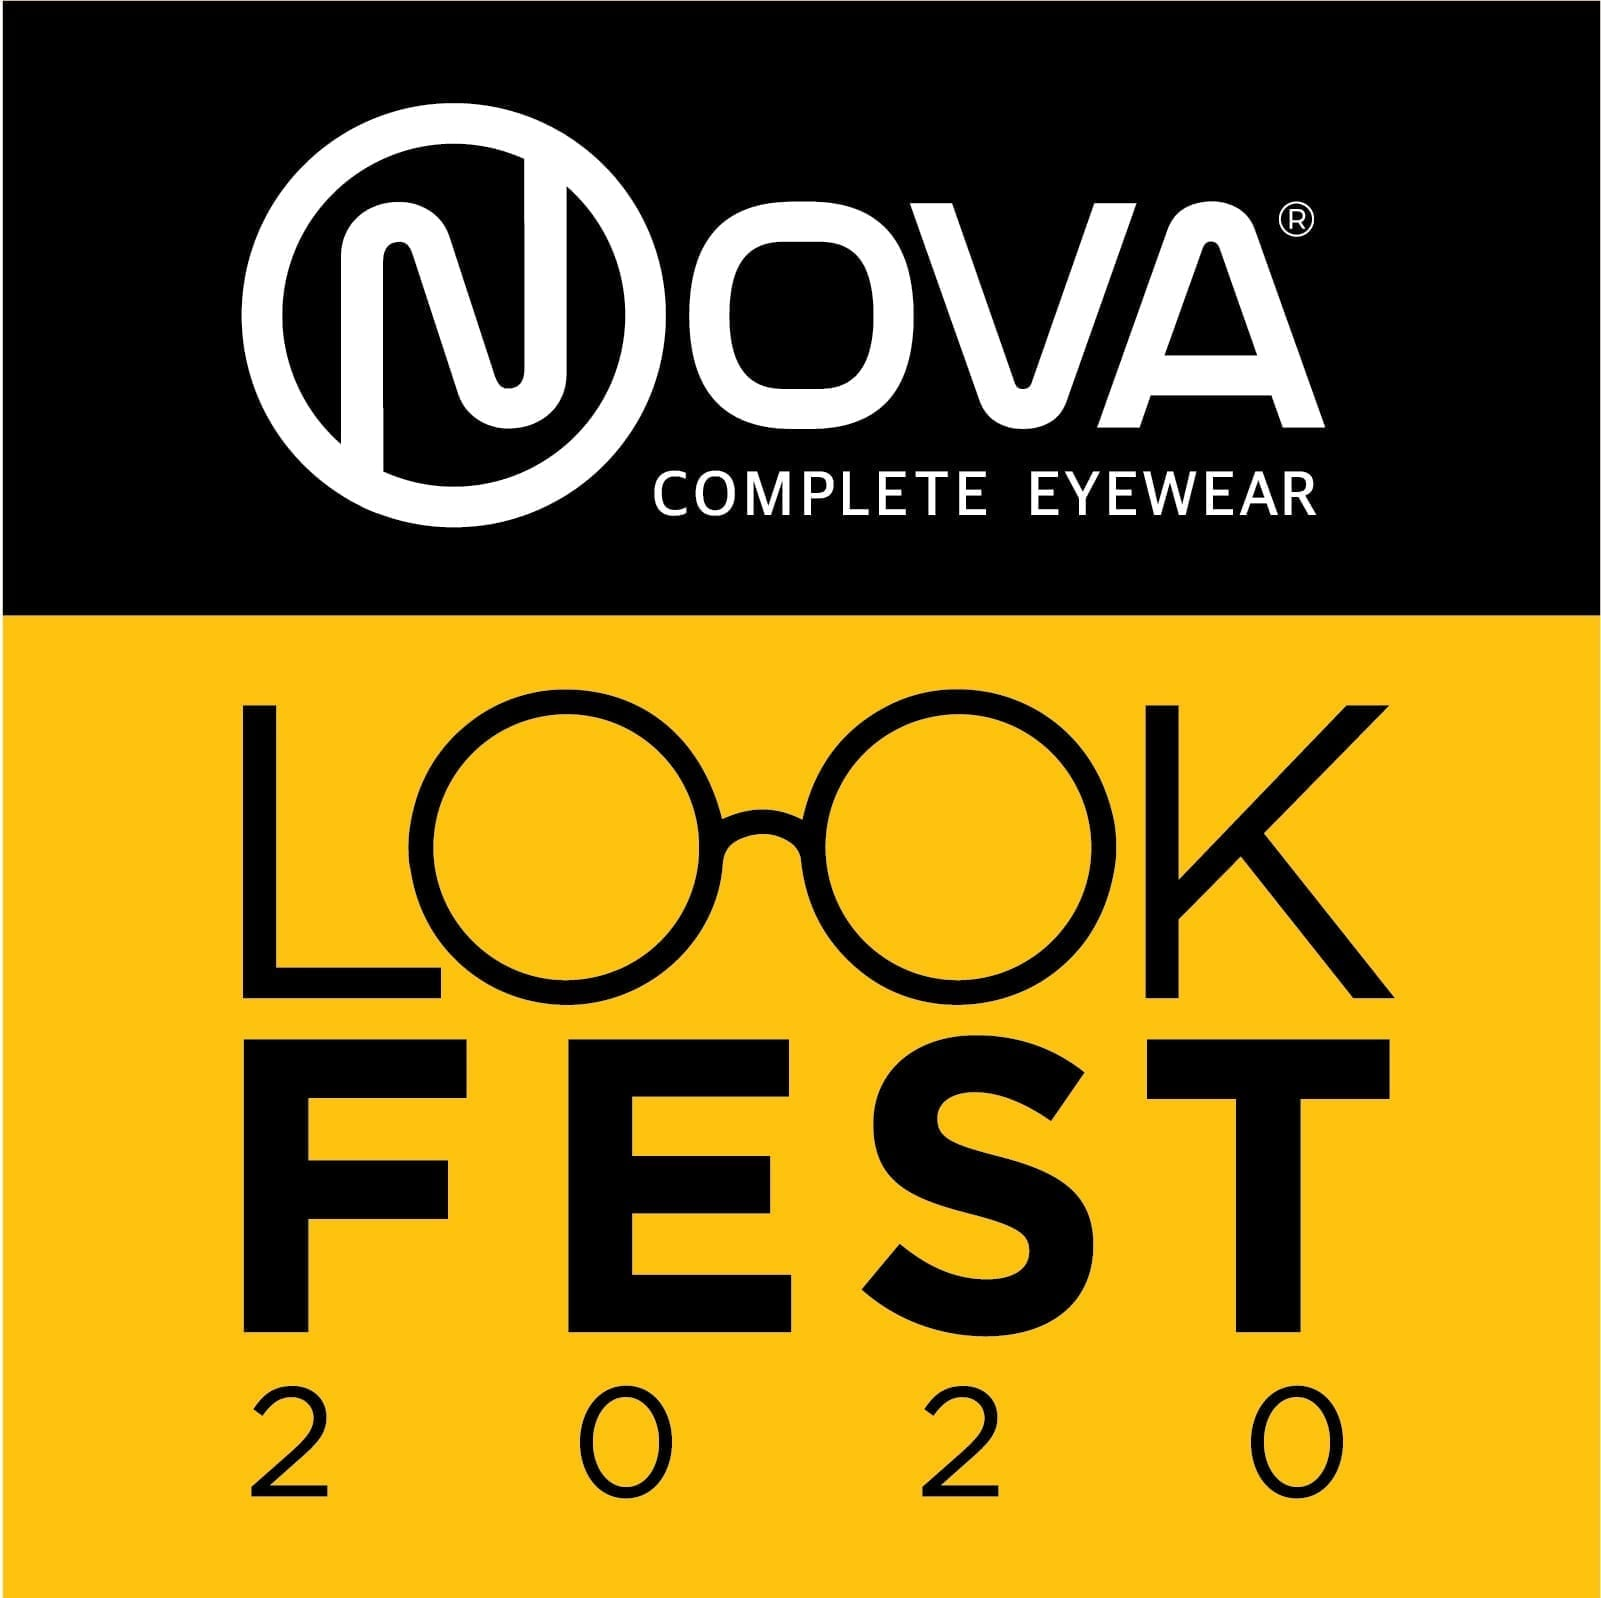 Nova Eyewear Rolls Out Offer With Nova Look Fest